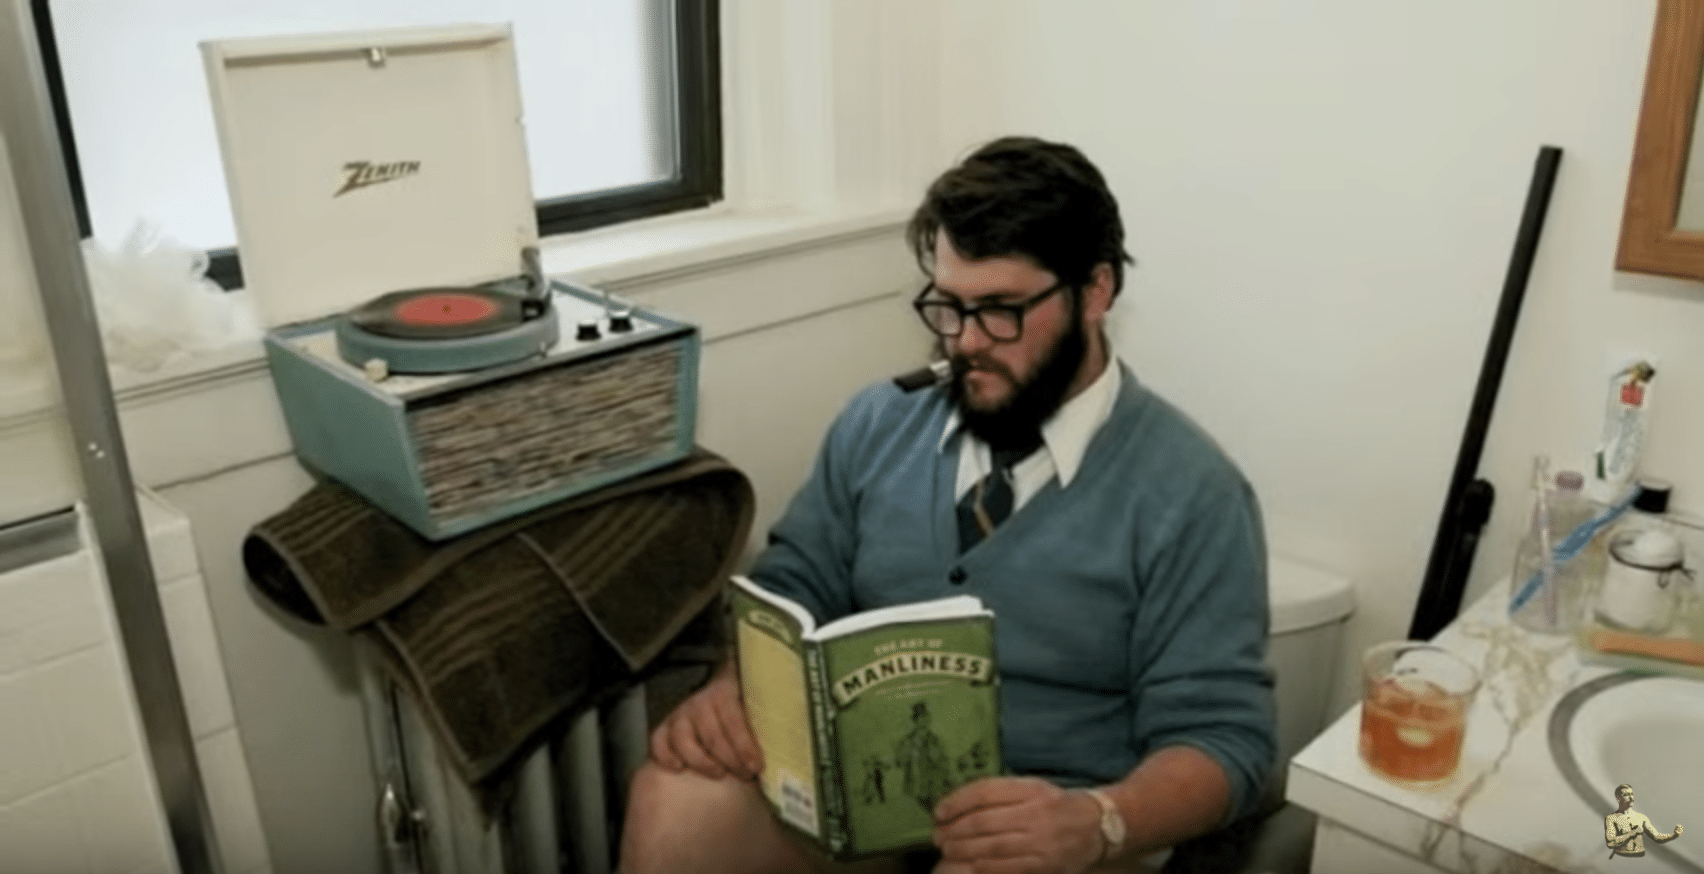 A man reading a book in a toilet.